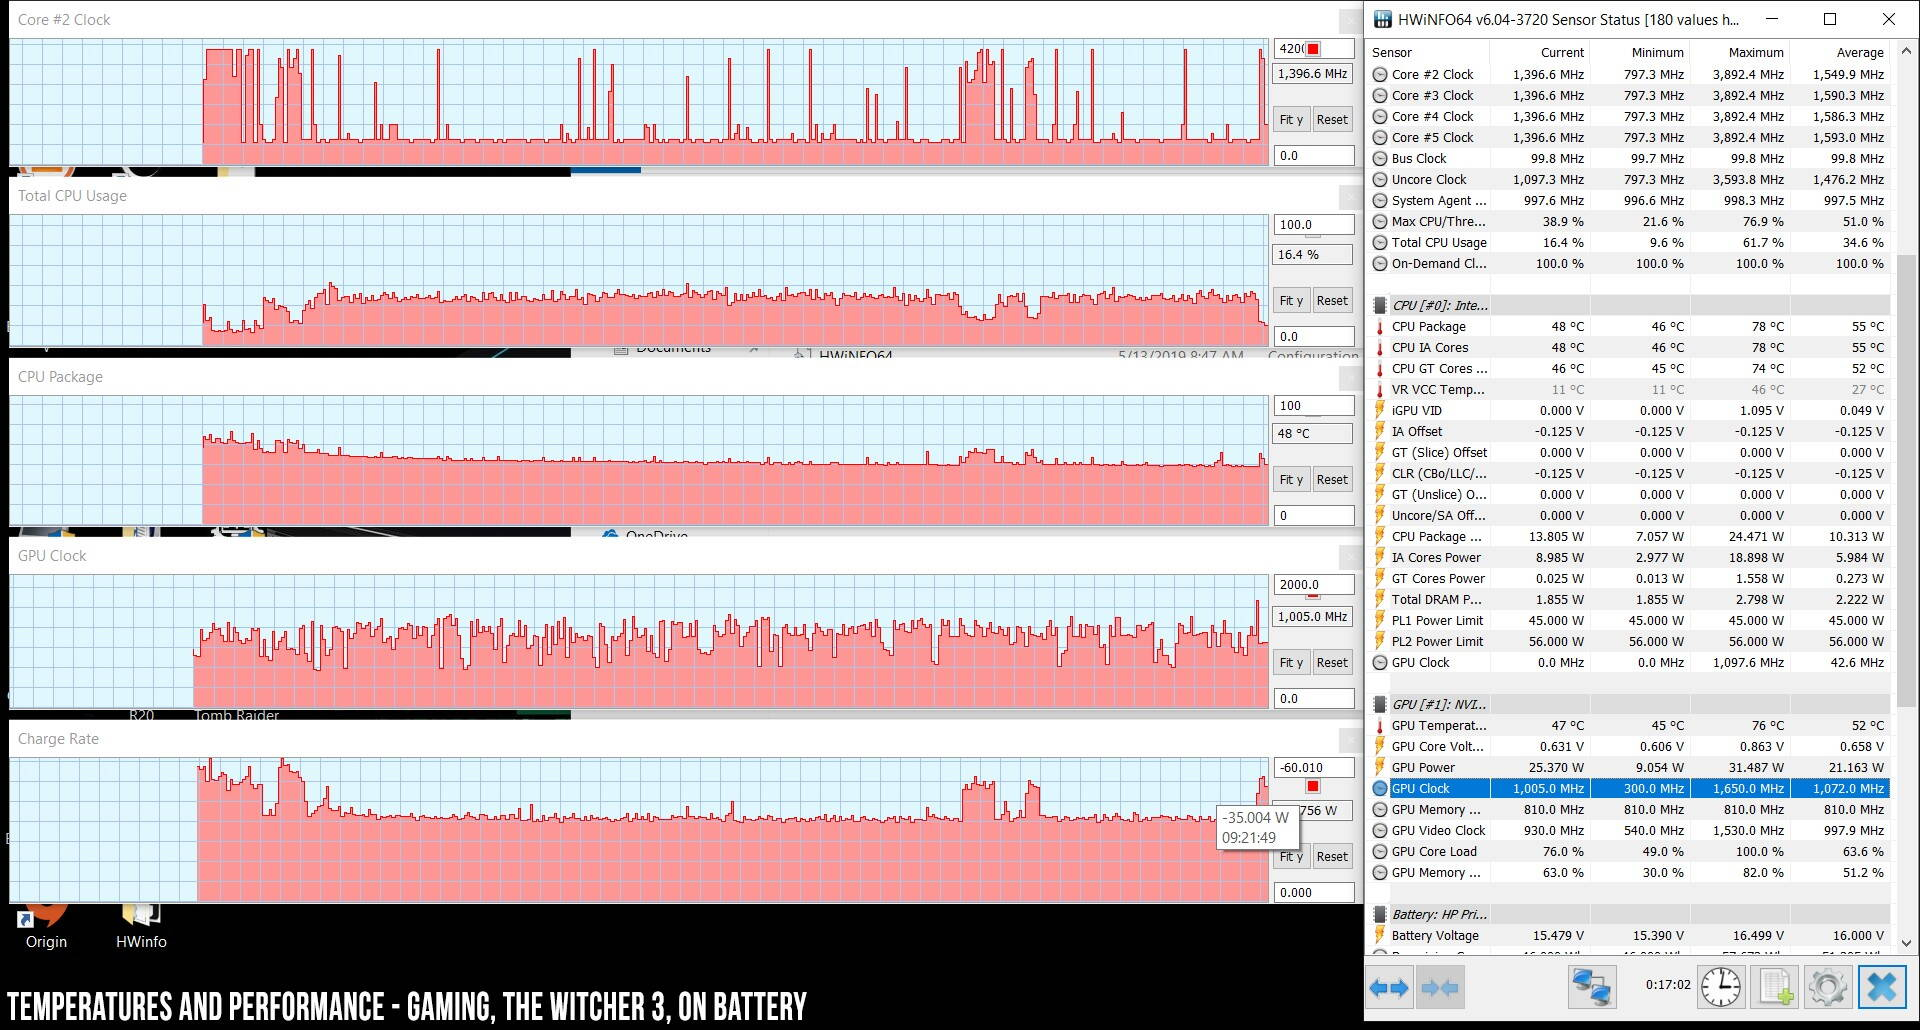 acer-predator-helios-300-perf-temps-gaming-default-witcher-battery